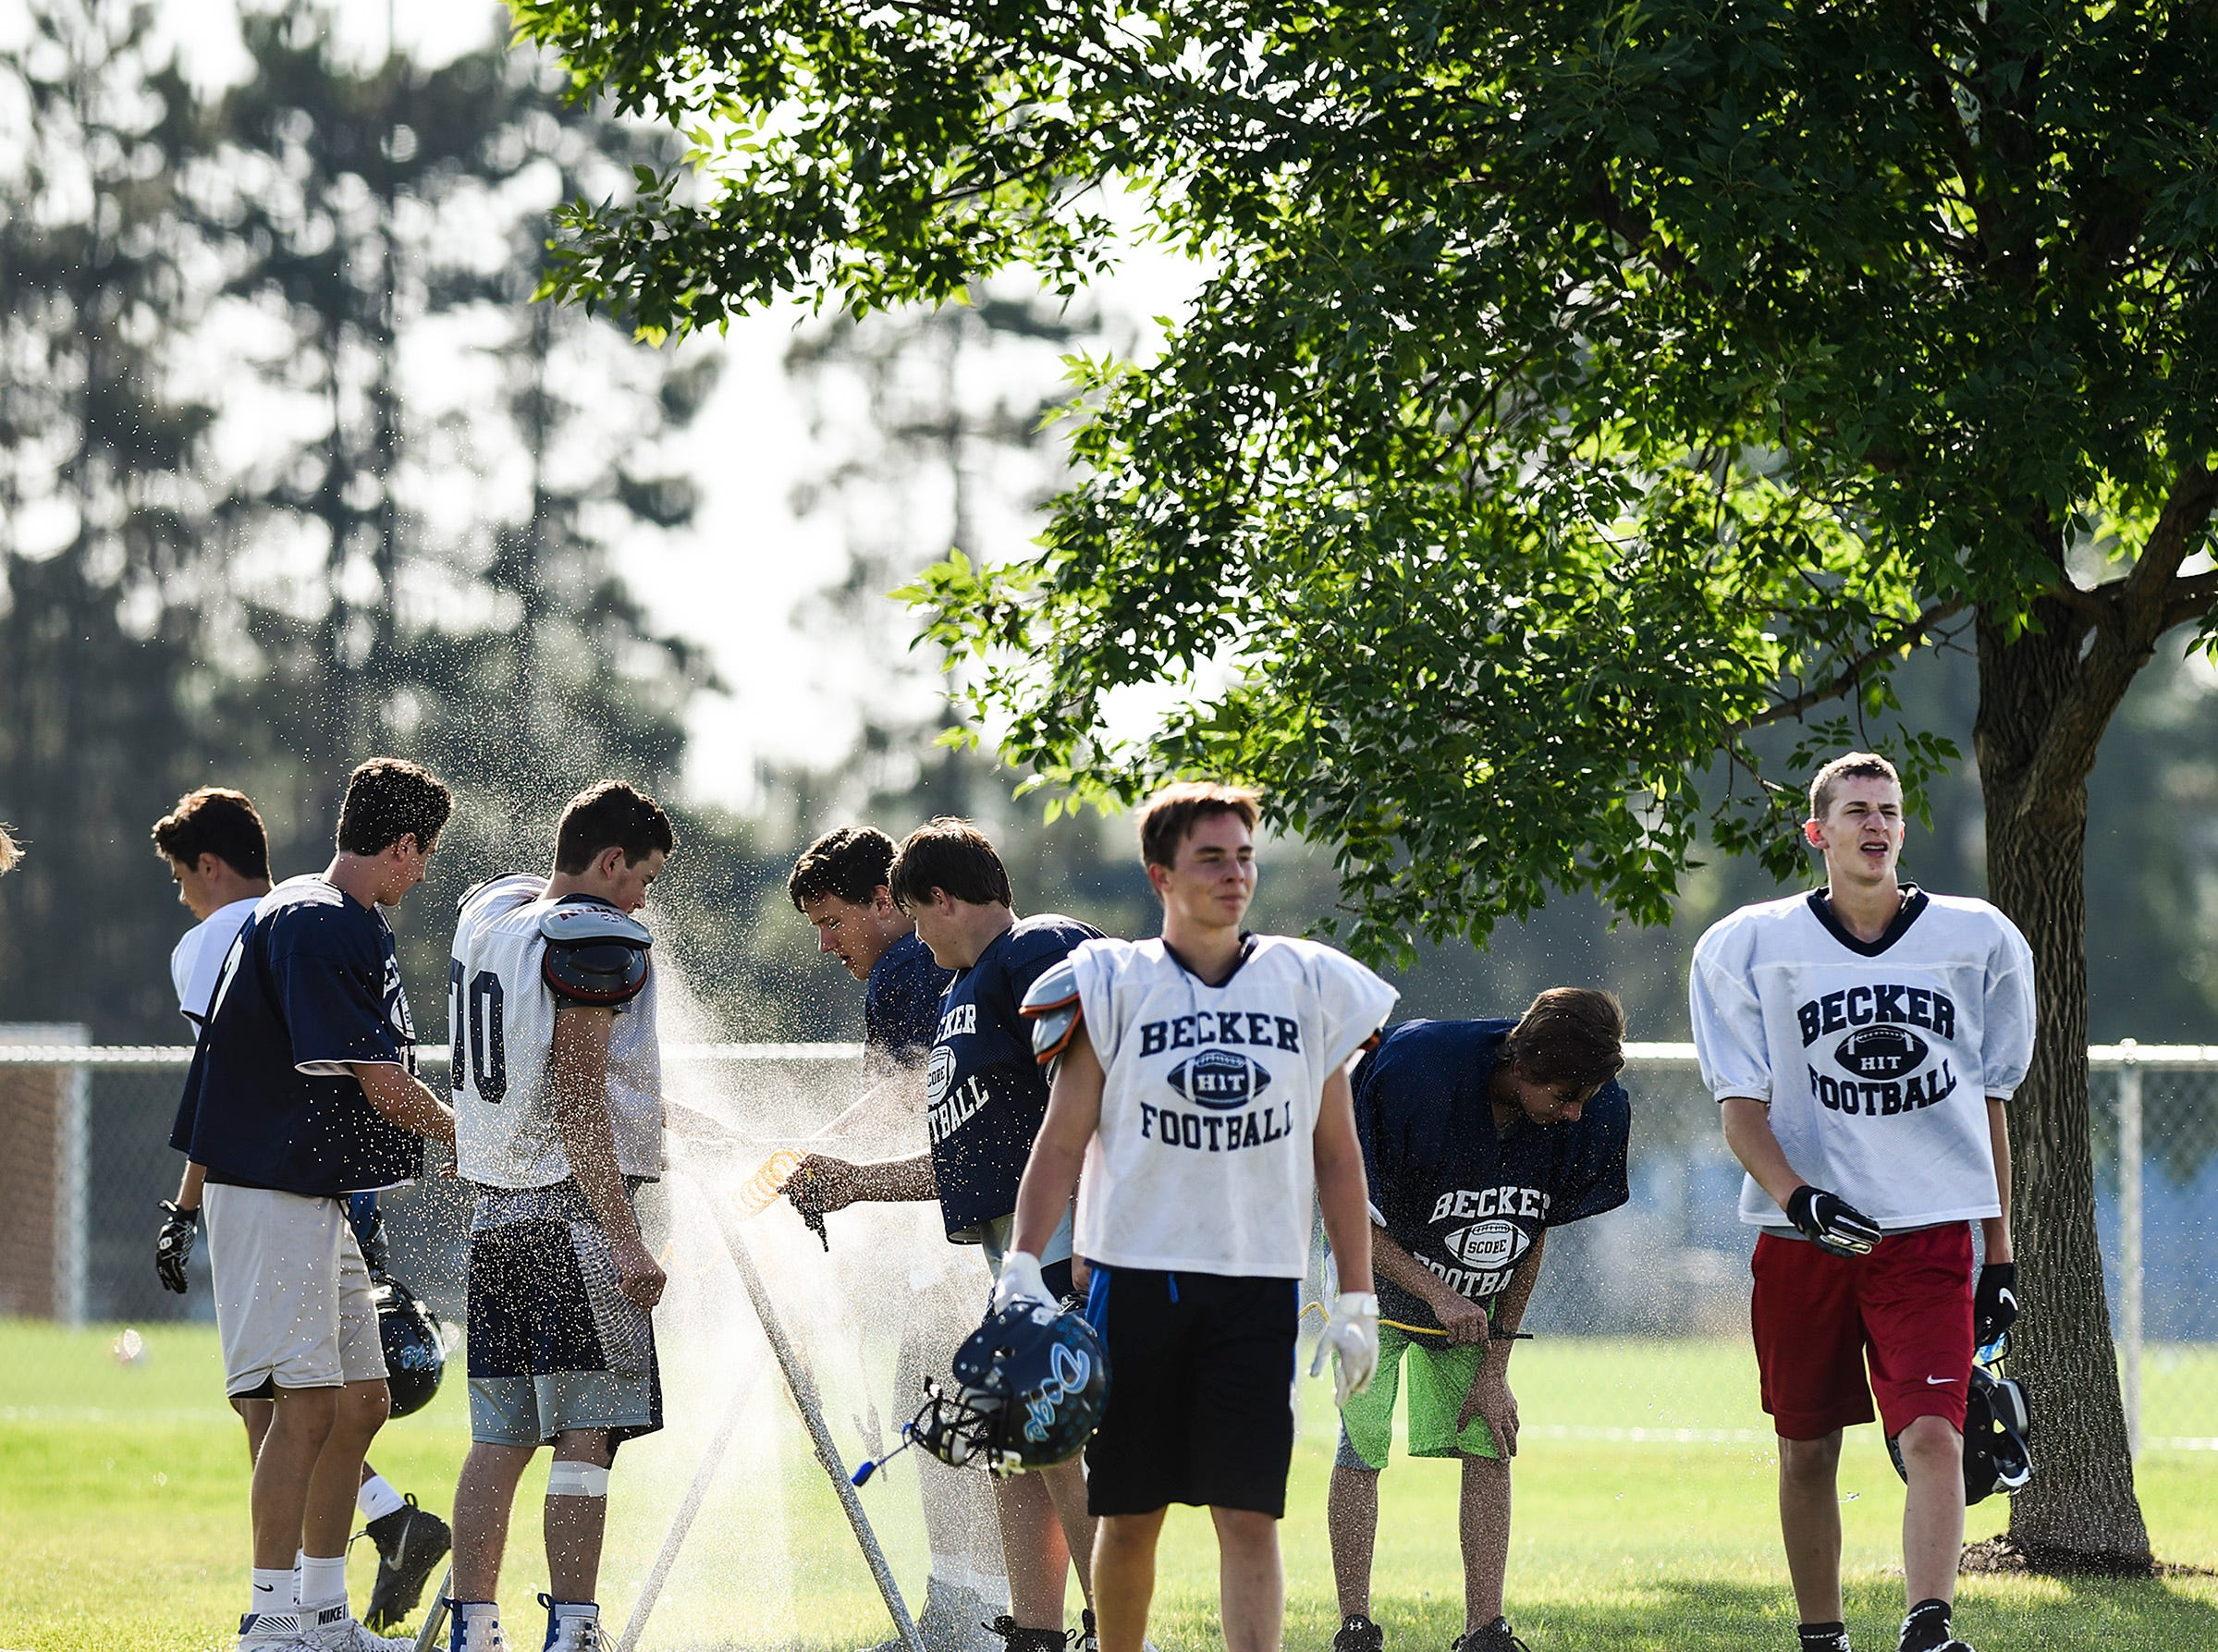 Becker players take a water break during practice Wednesday, Aug. 22, at the Becker High School.